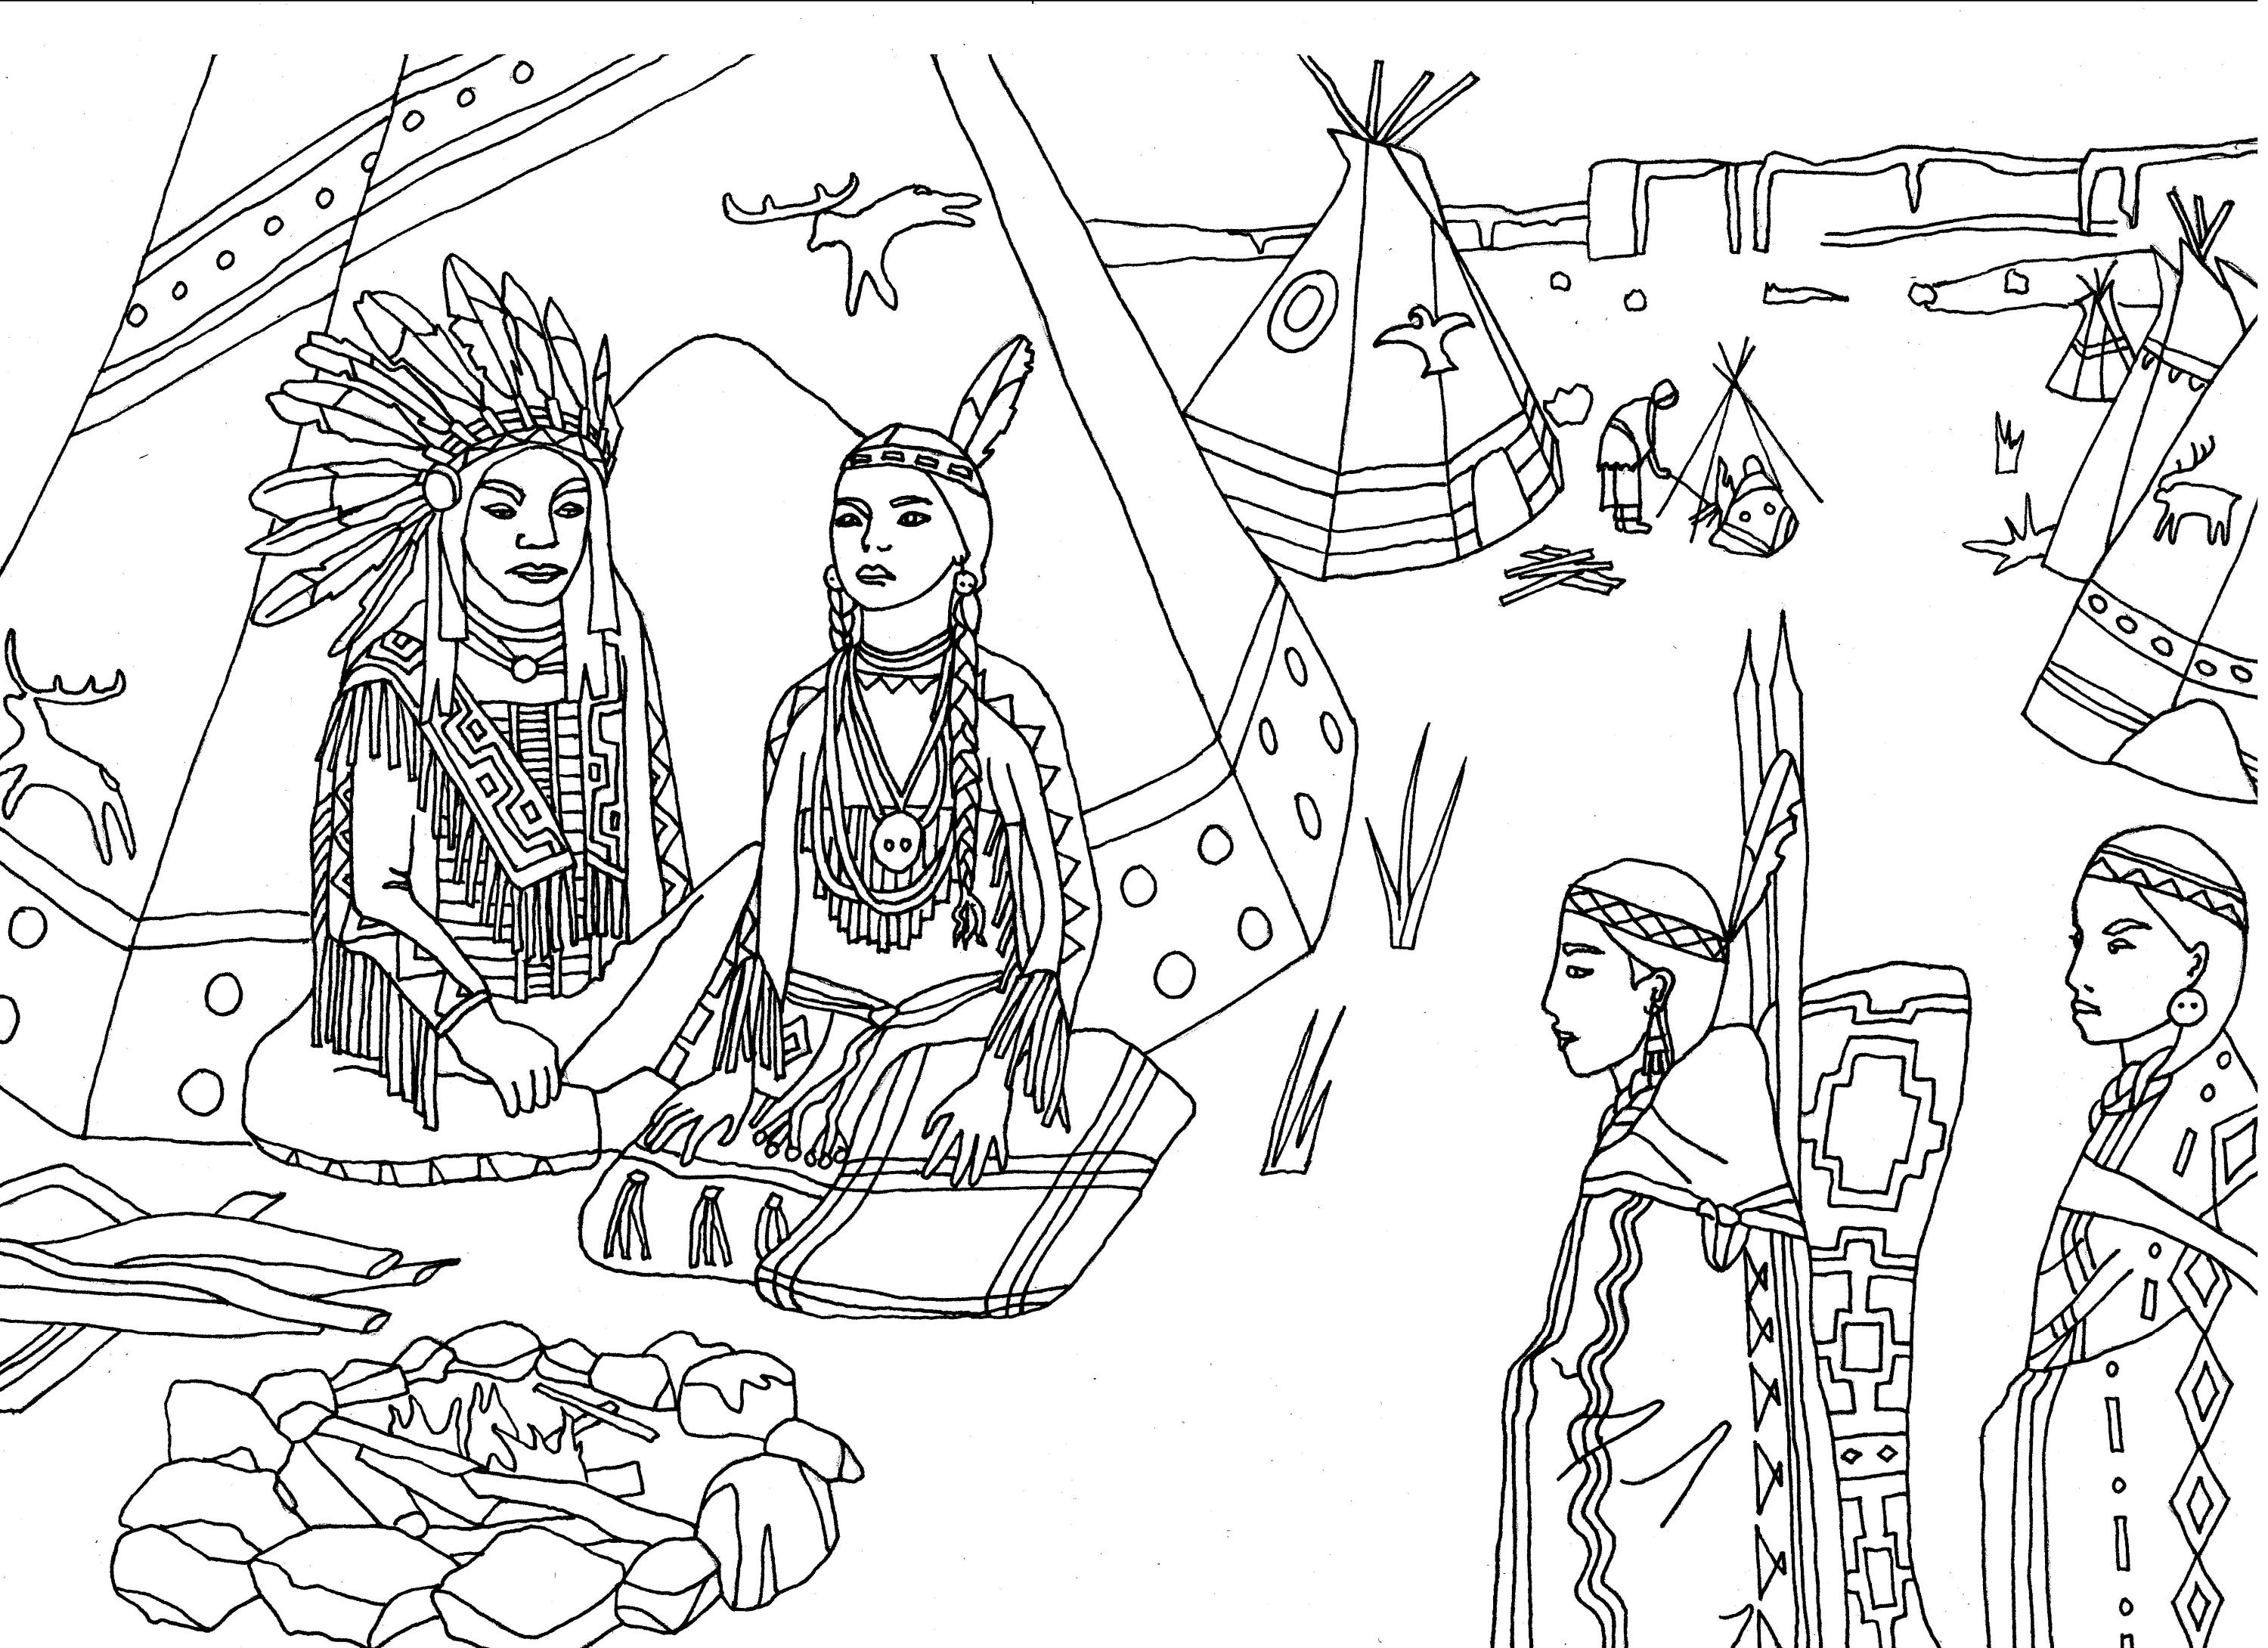 native american coloring sheets native american coloring pages to download and print for free native sheets coloring american